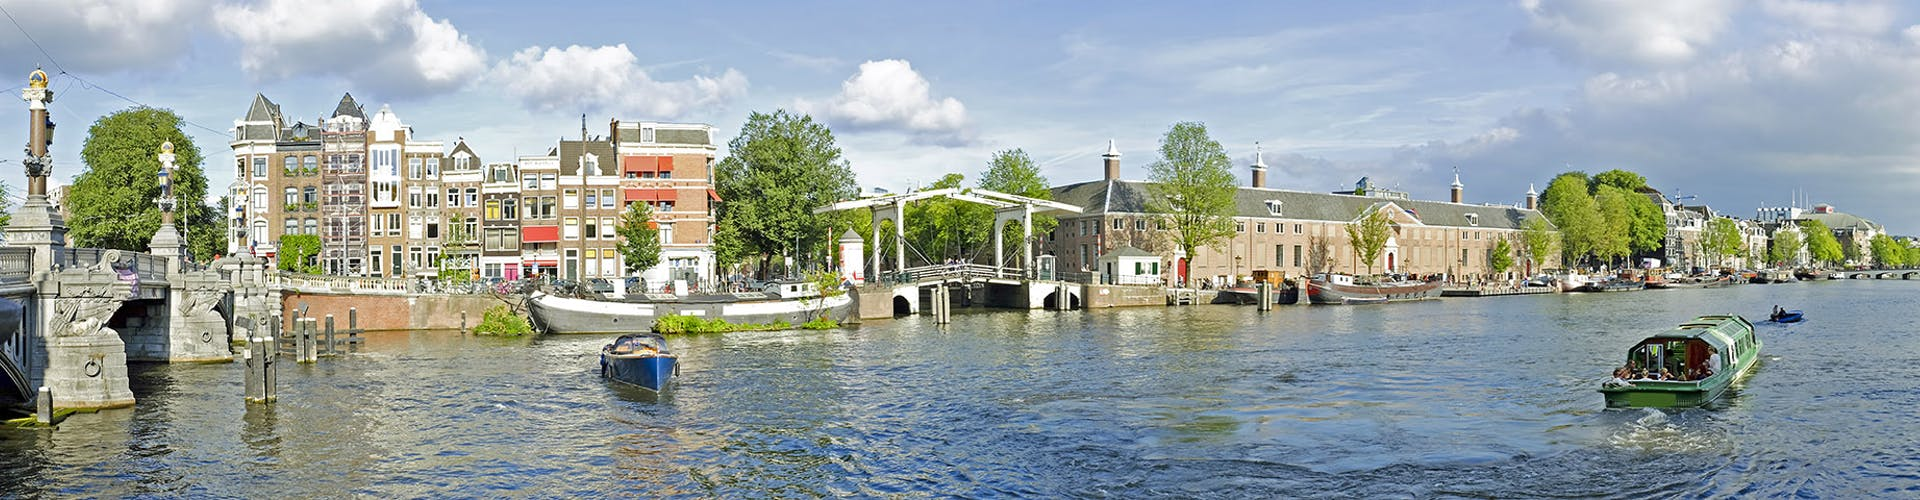 Study Visual Arts in Netherlands